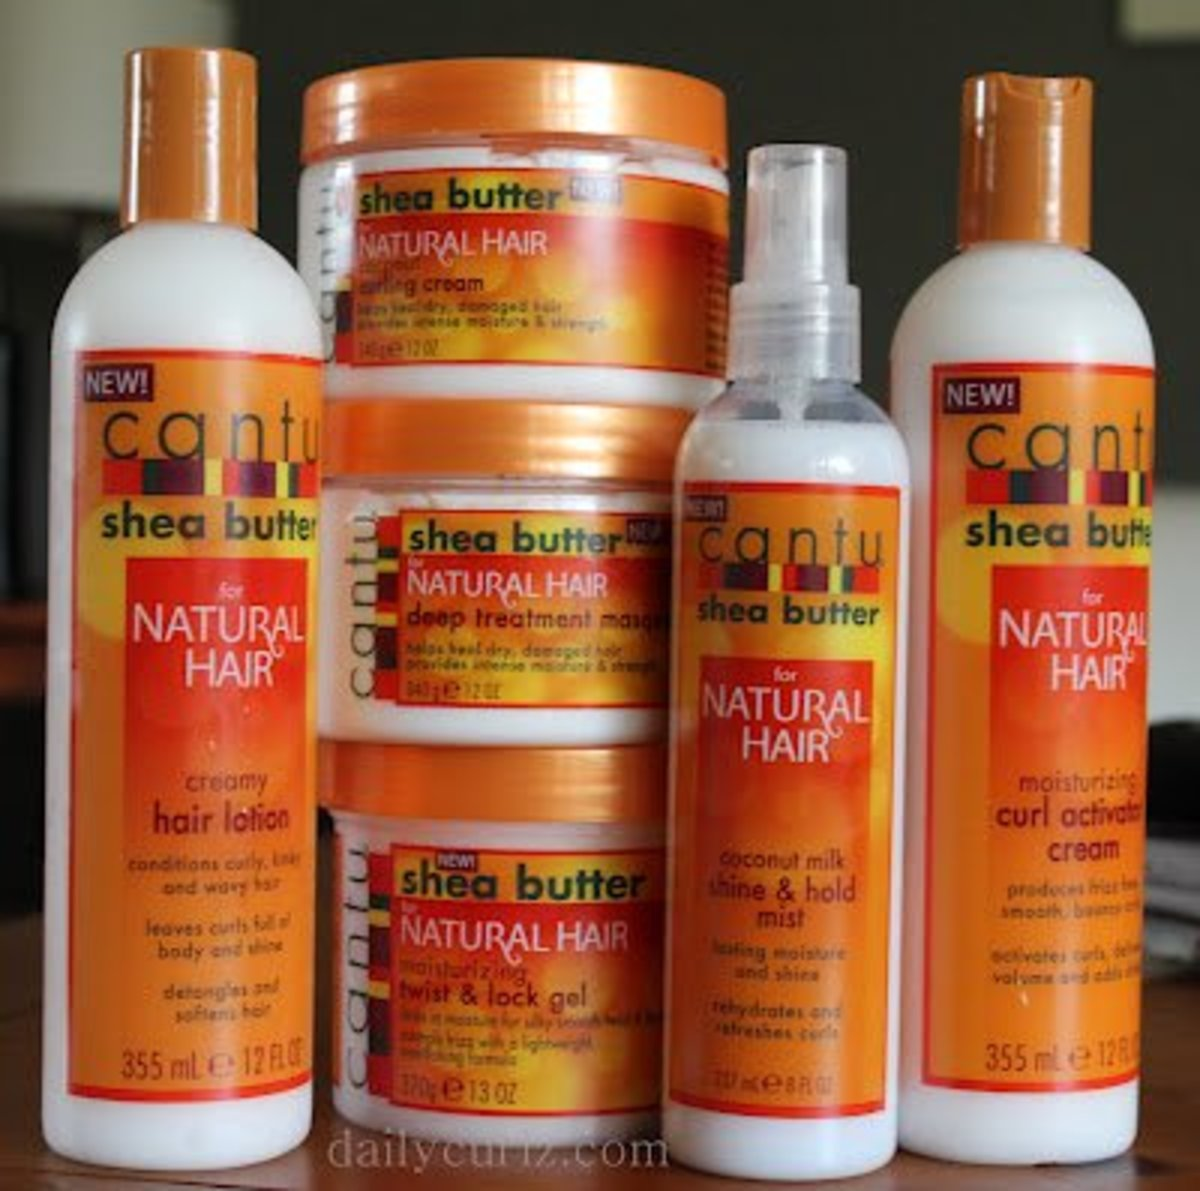 Cantu Shea Butter Natural Hair Line Review